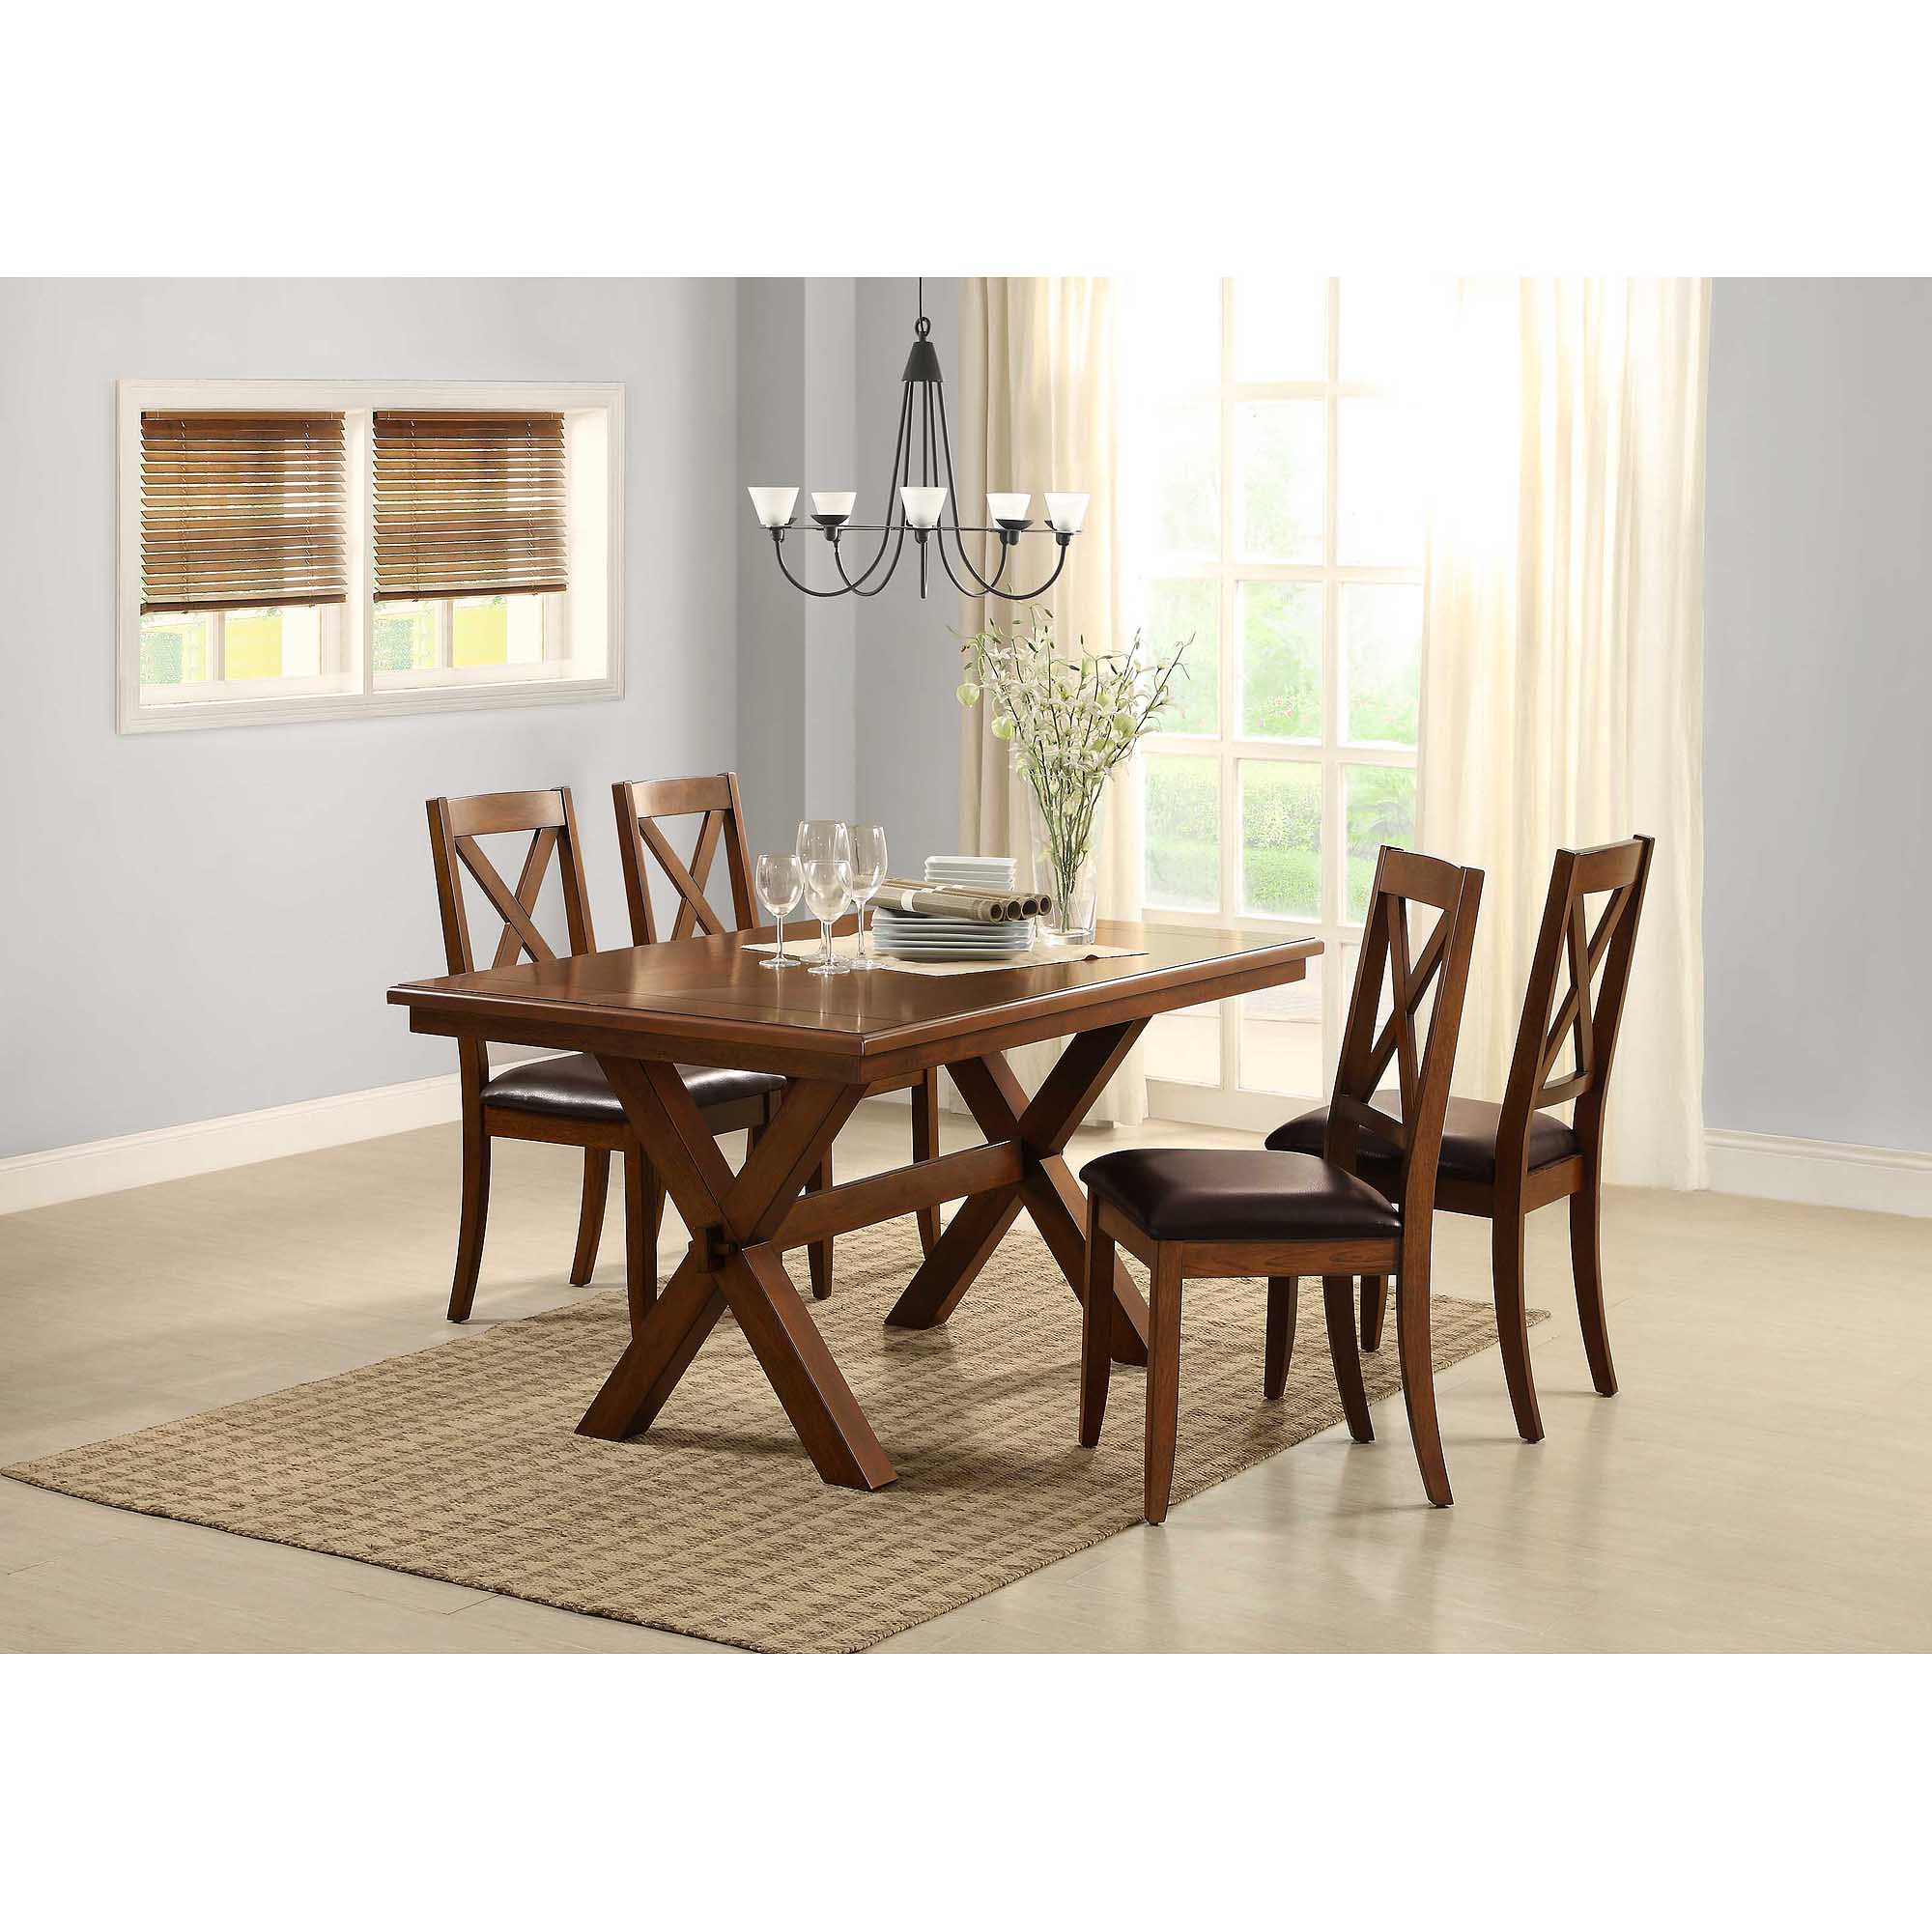 walmart dining room sets Better Homes & Gardens Maddox Crossing Dining Table   Walmart.com walmart dining room sets